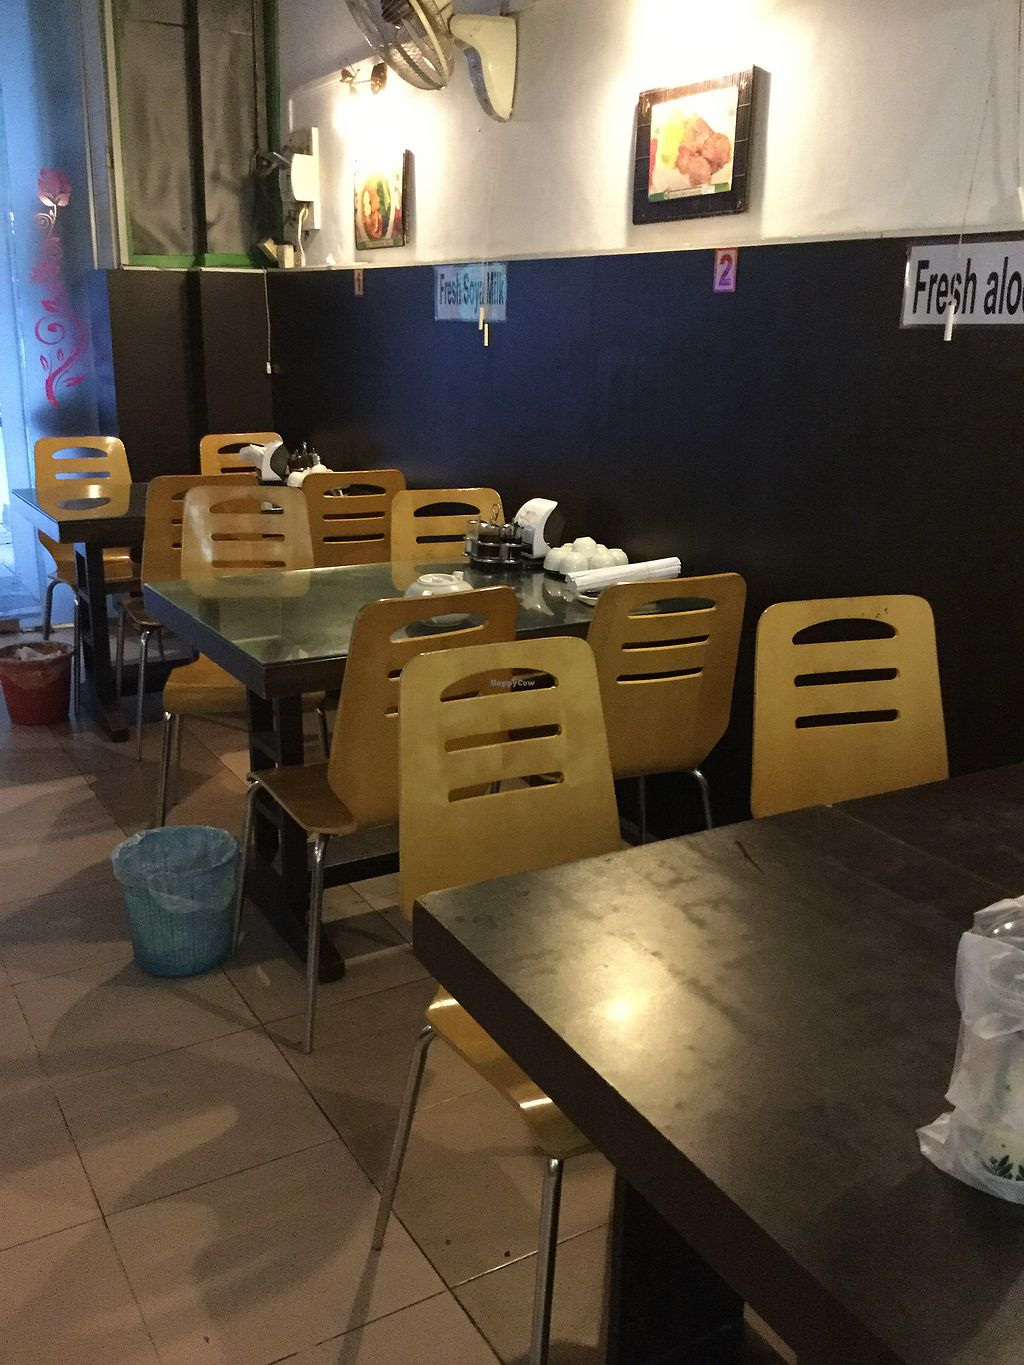 """Photo of Evergreen Vegetarian and Cafe House  by <a href=""""/members/profile/Mike%20Munsie"""">Mike Munsie</a> <br/>Internal seating <br/> September 4, 2017  - <a href='/contact/abuse/image/23190/300789'>Report</a>"""